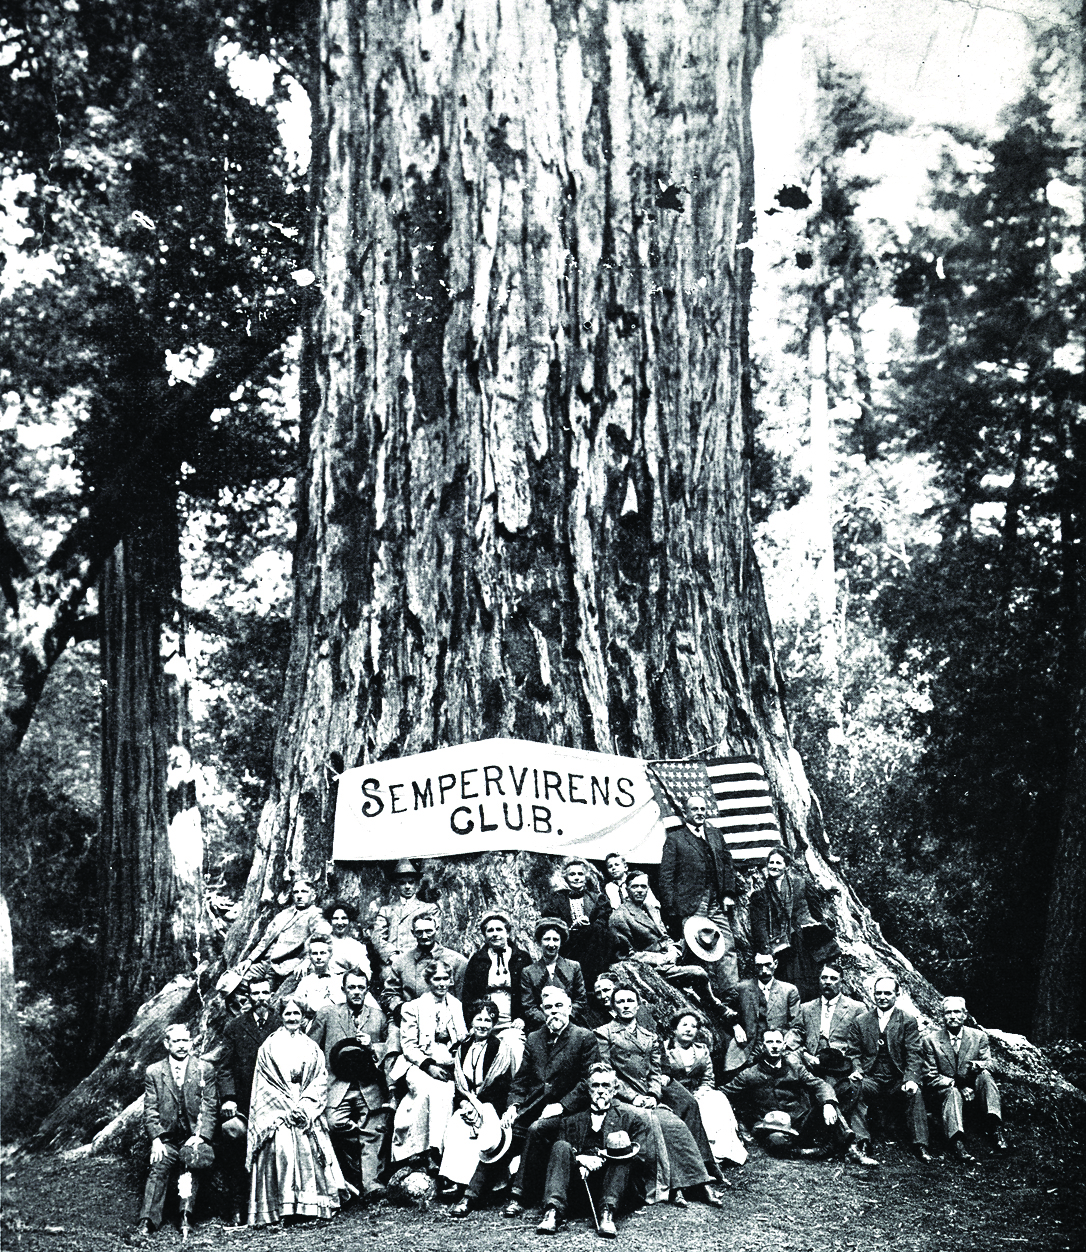 Established in 1902, Big Basin Redwoods is California's oldest state park. In the heart of the Santa Cruz Mountains, its biggest attractions—literally—are its ancient coast redwoods. Photo approx. 1901 (Sempervirens Club) [1086 x 1252]